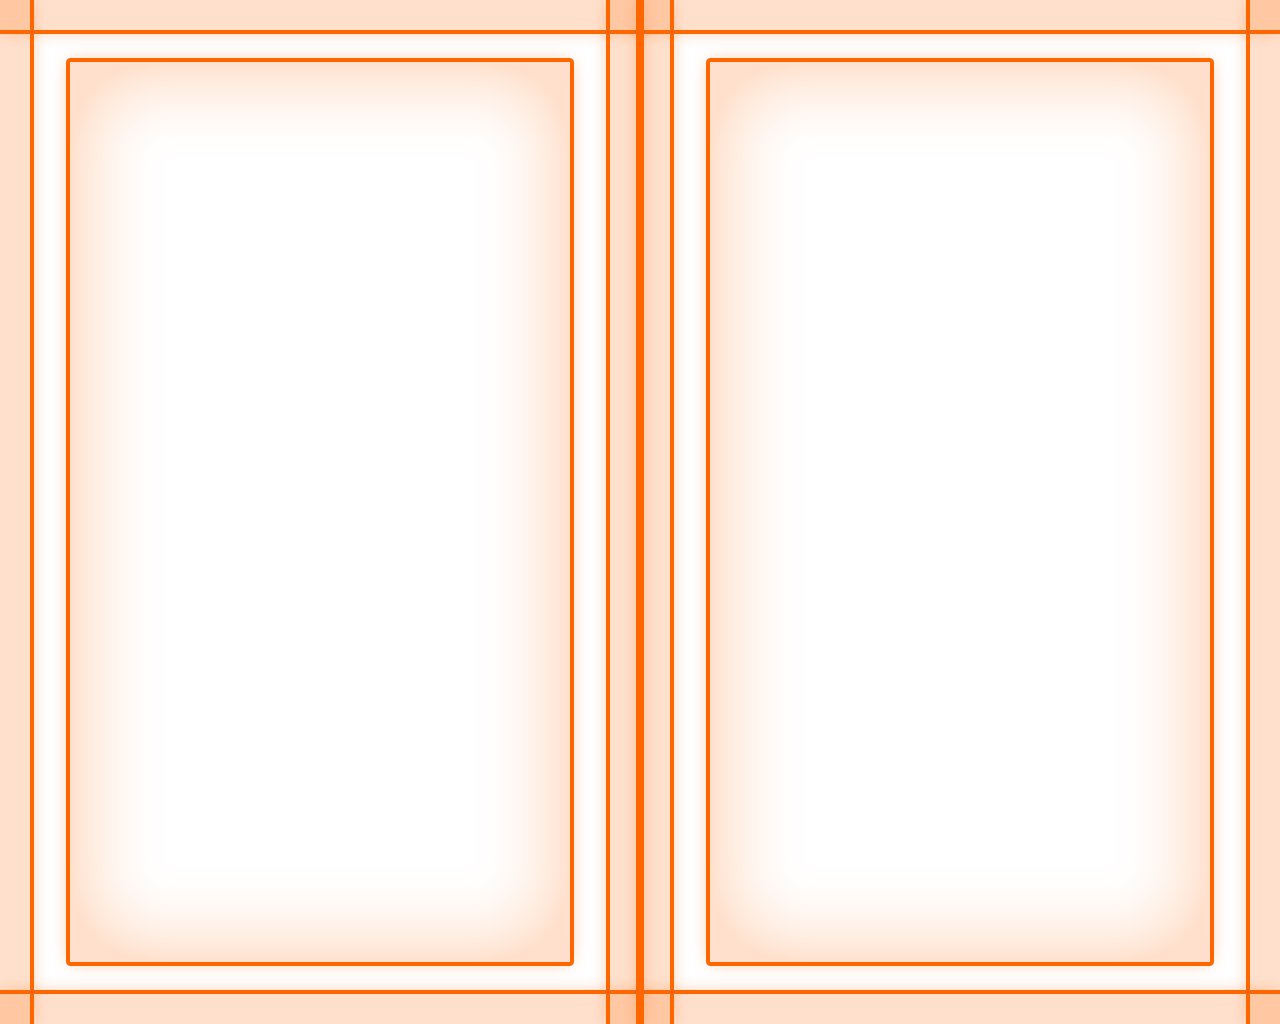 Book Pages Orange Border Wallpaper 1280x1024